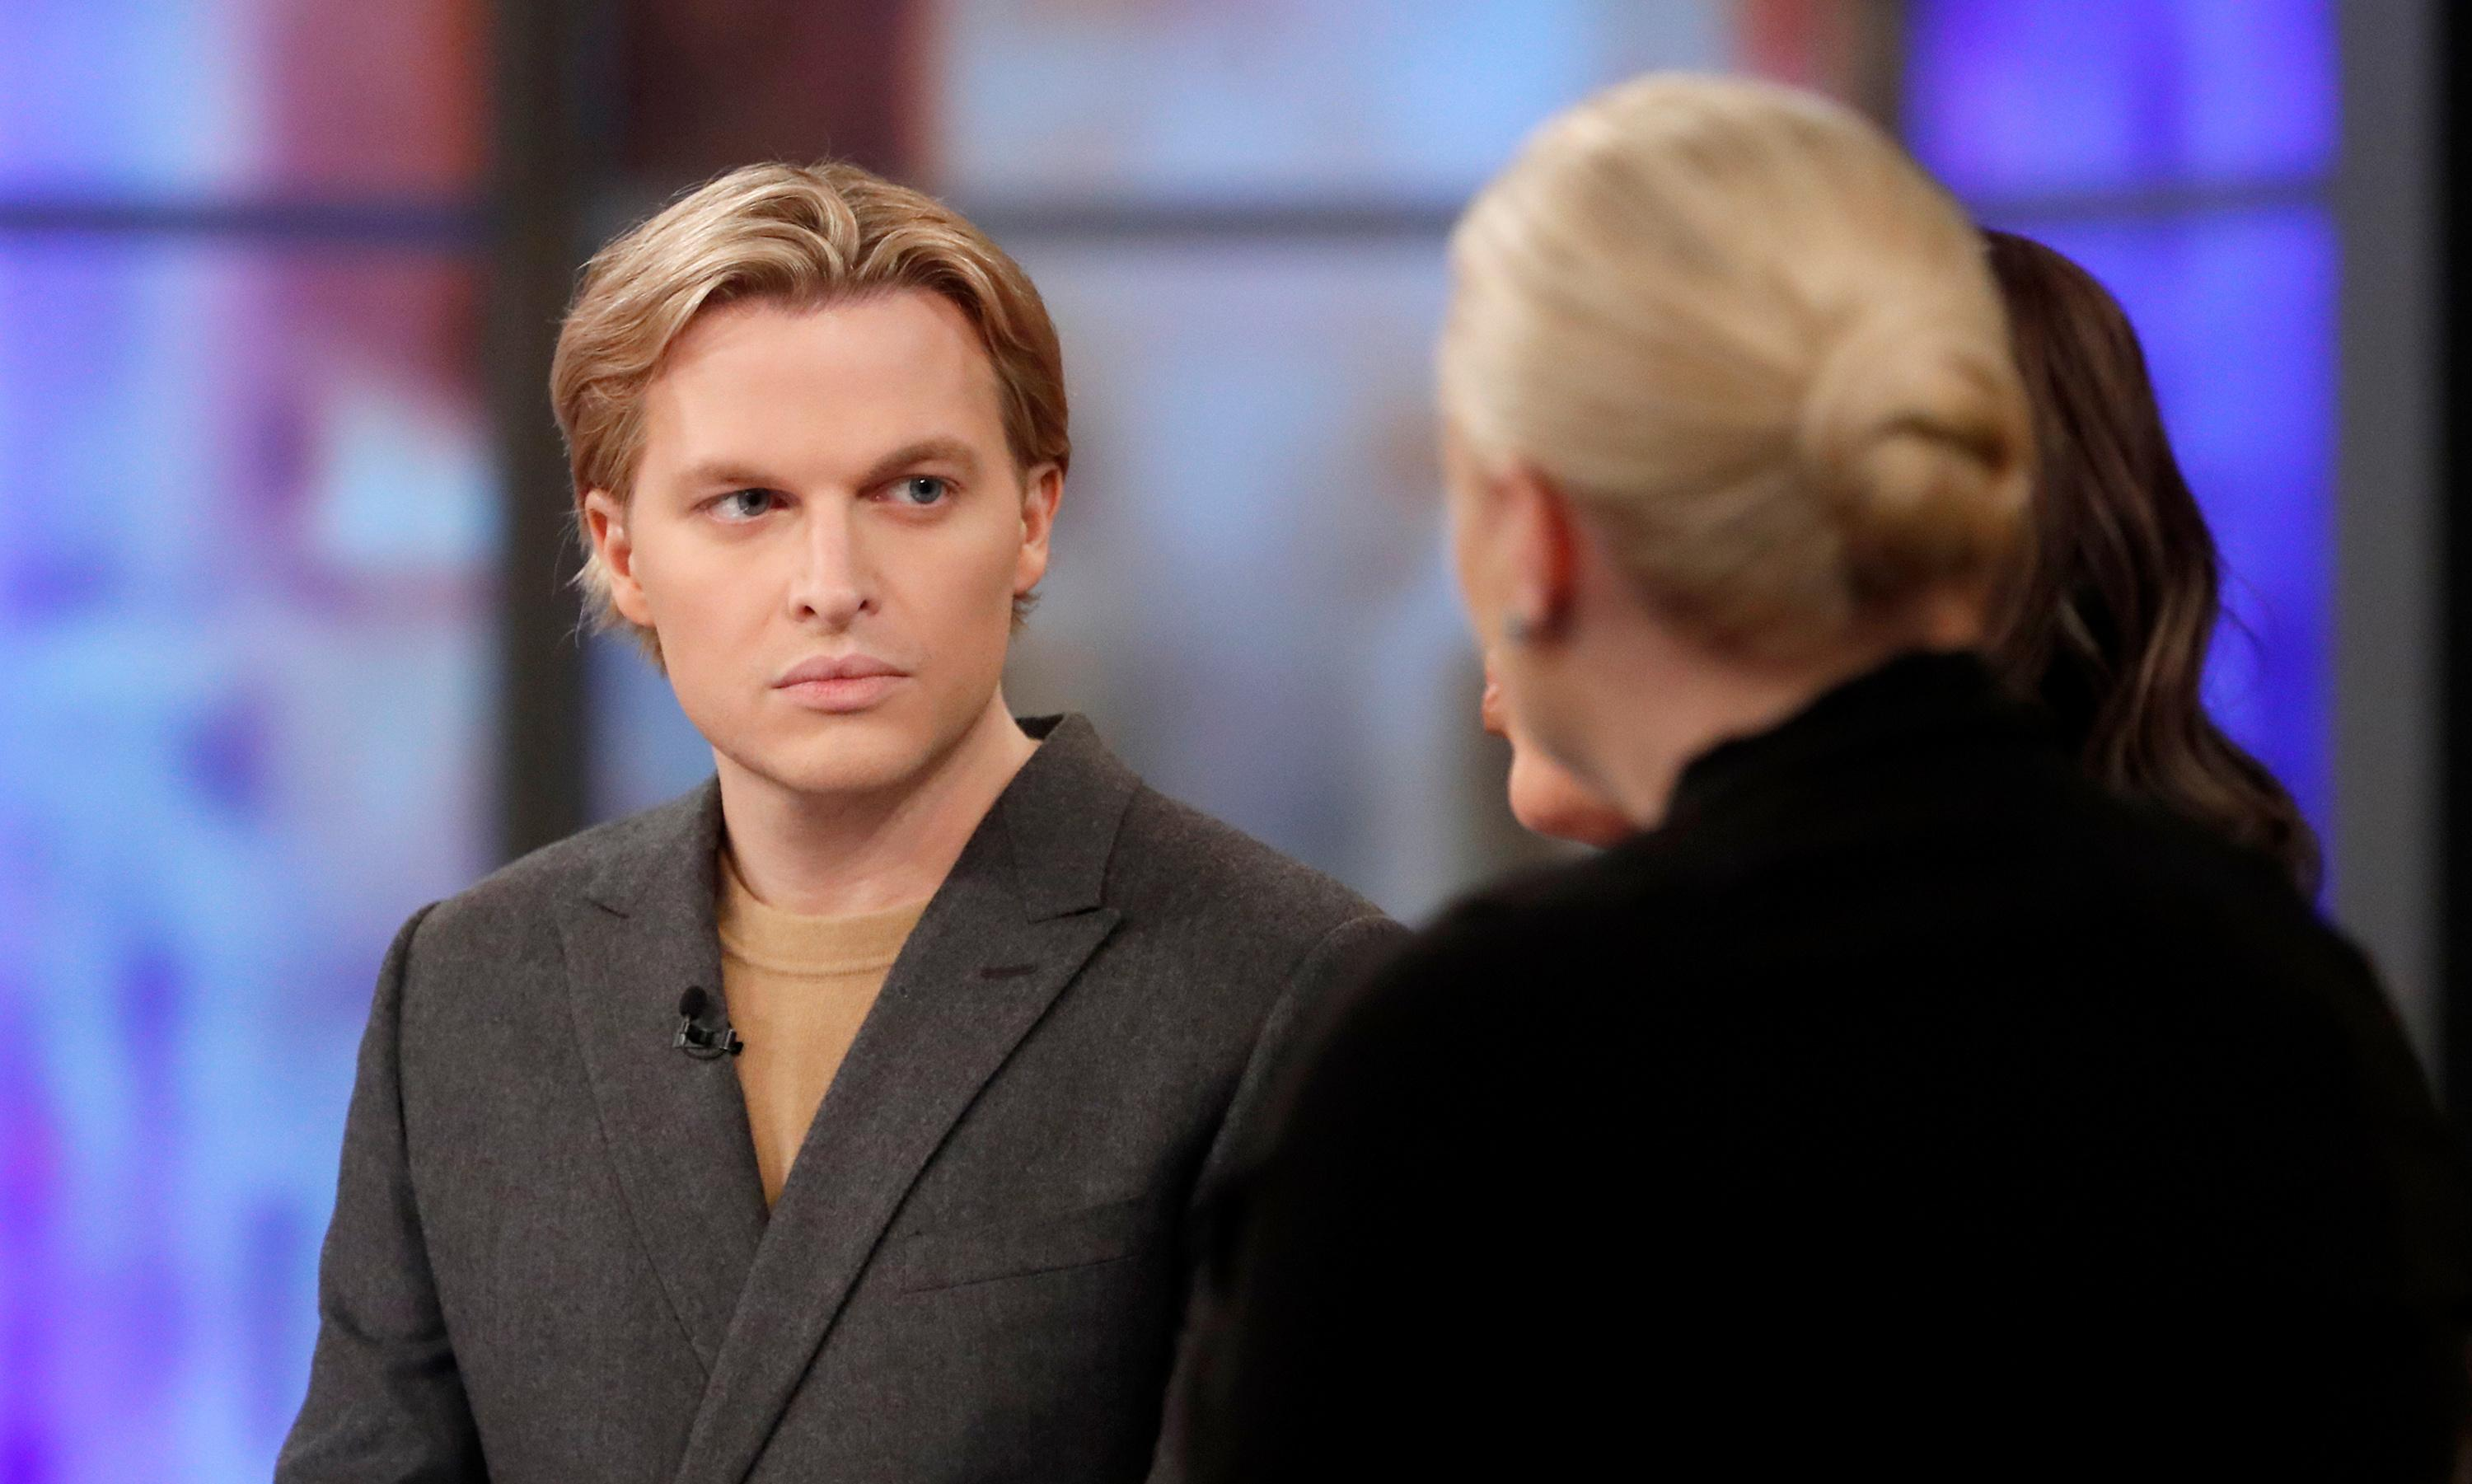 Shredded Trump documents and spy games: Ronan Farrow's biggest scoops